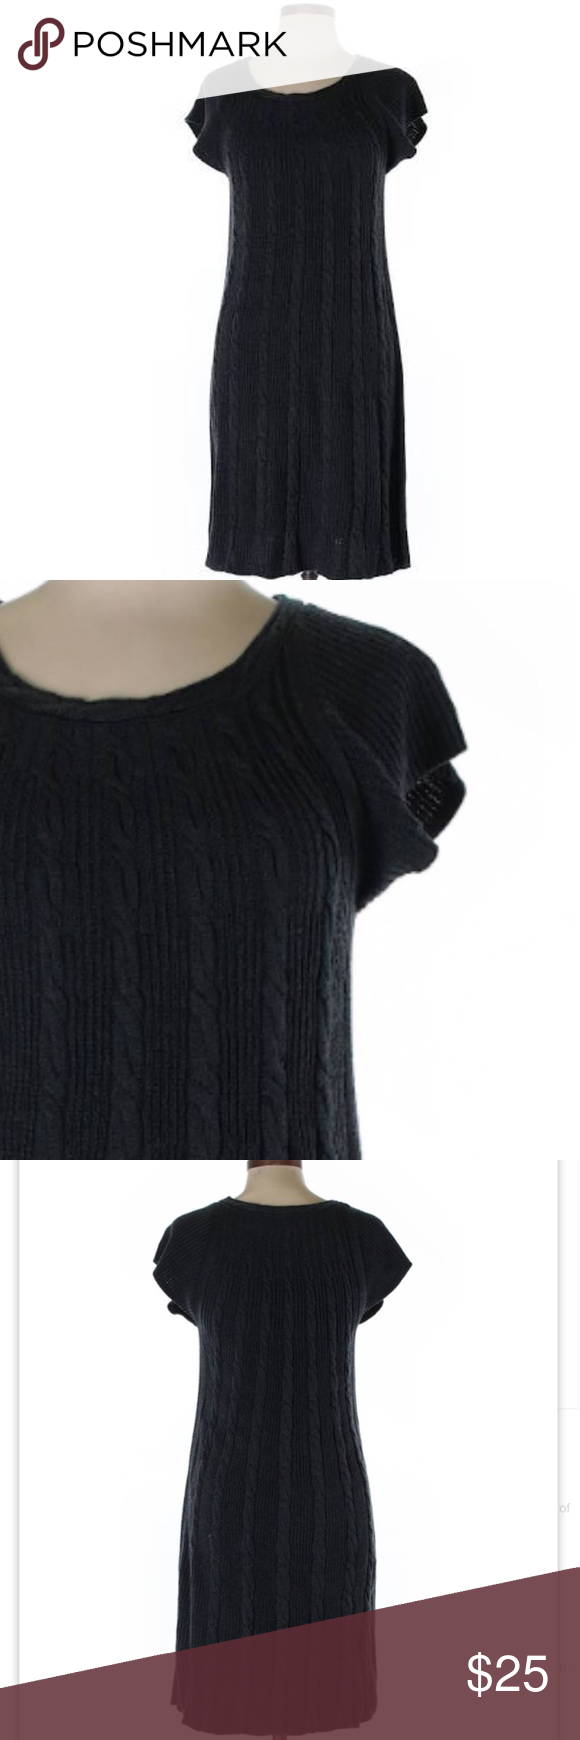 "Calvin Klein Wool Chunky Knit Sweater Dress Small Calvin Klein Wool Chunky Knit Knee Length Midi Black Sweater Dress Small. True to size. 37"" shoulder to hem 17"" pit to pit. Excellent condition. Calvin Klein Sweaters"